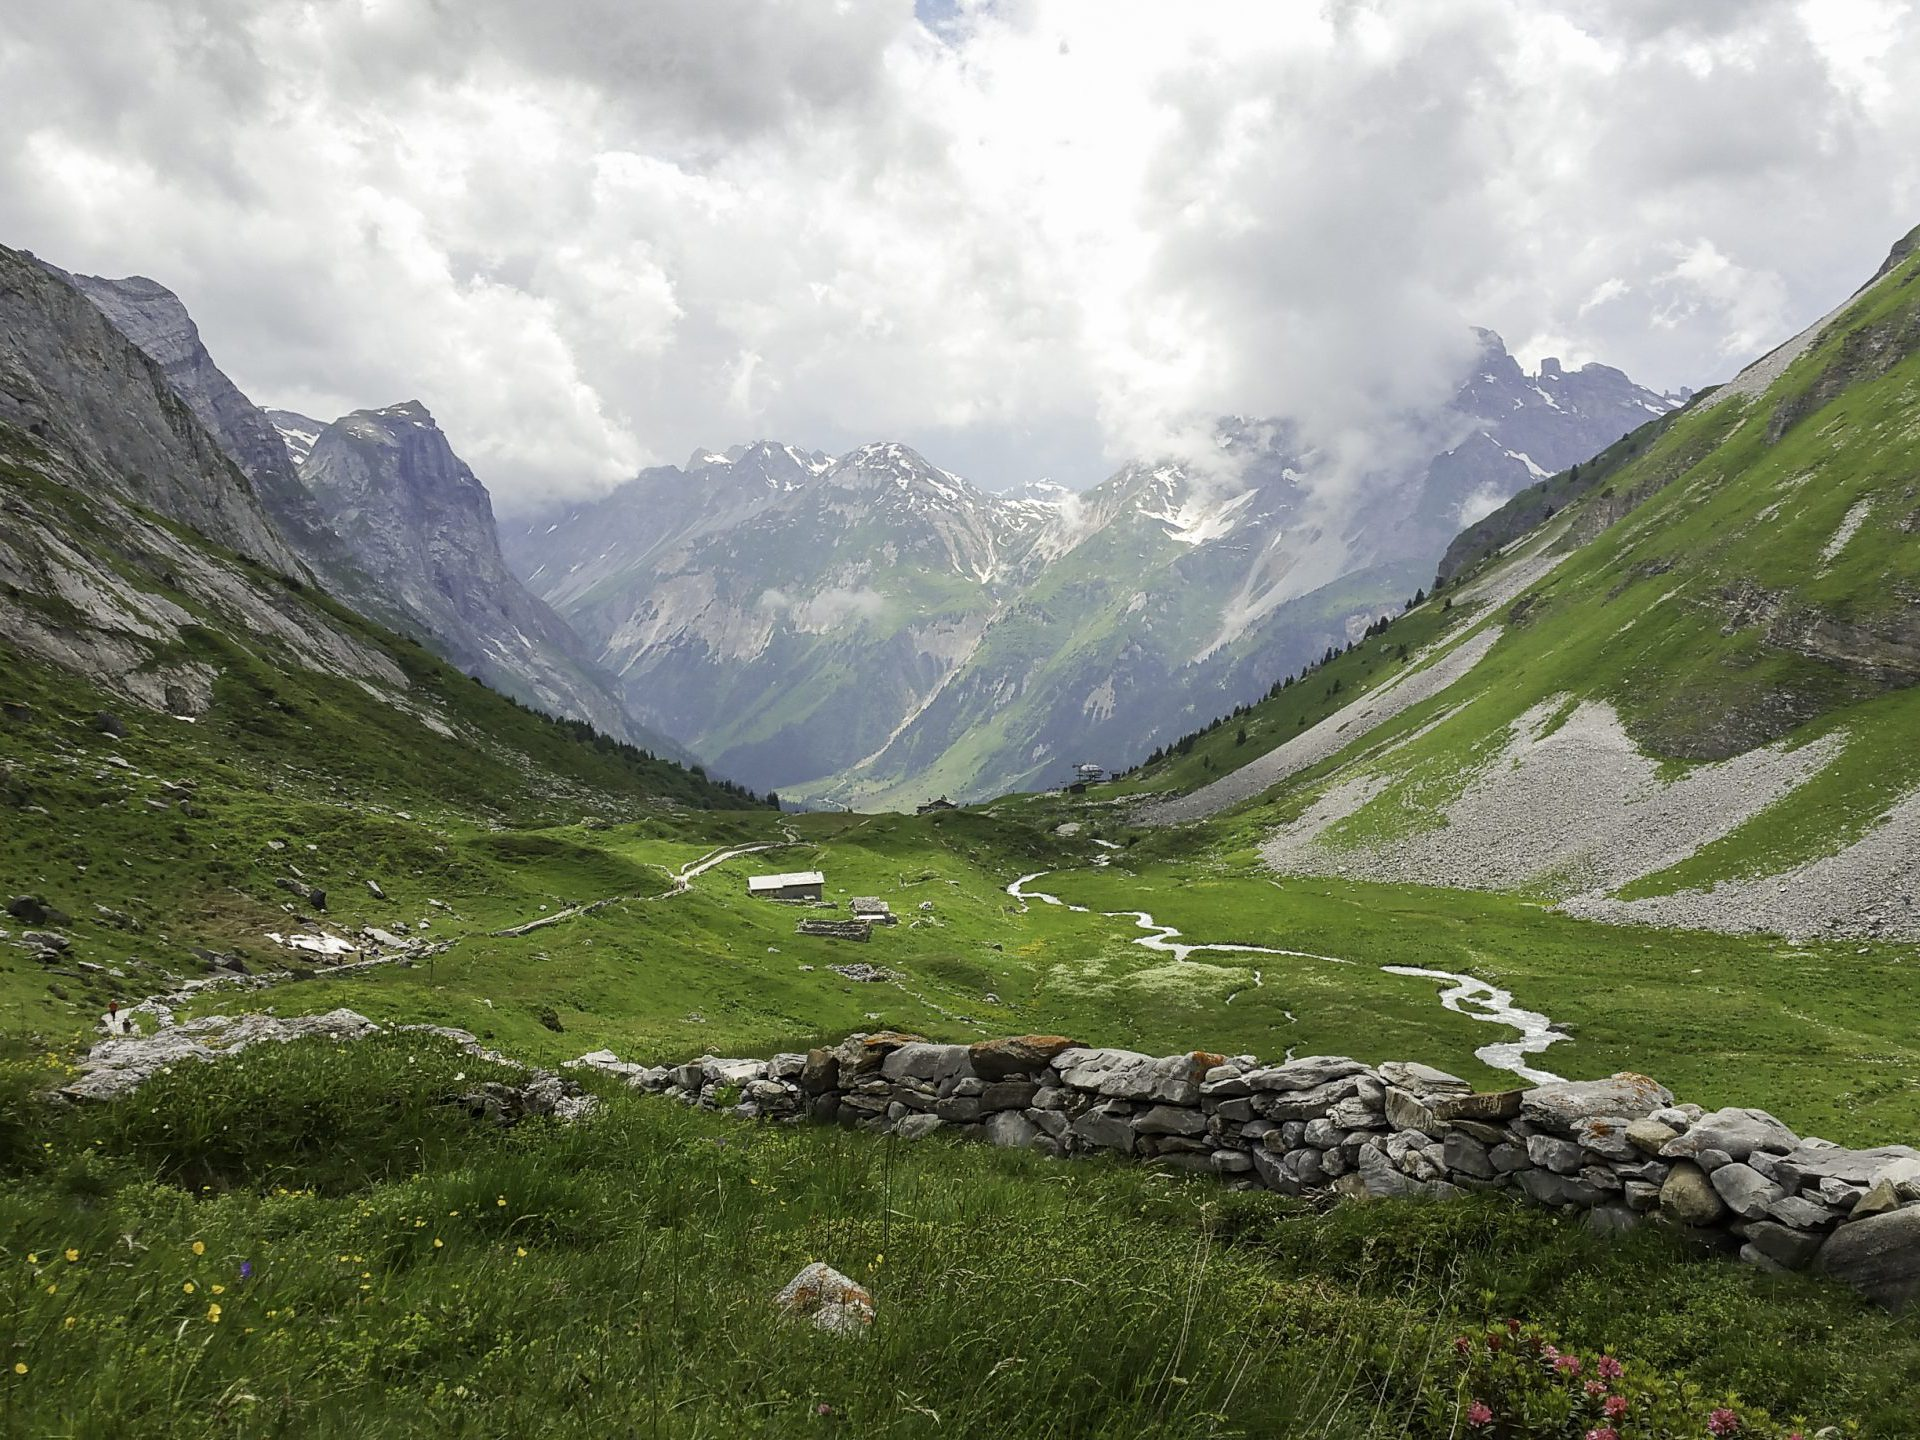 Alpine scenery in summer